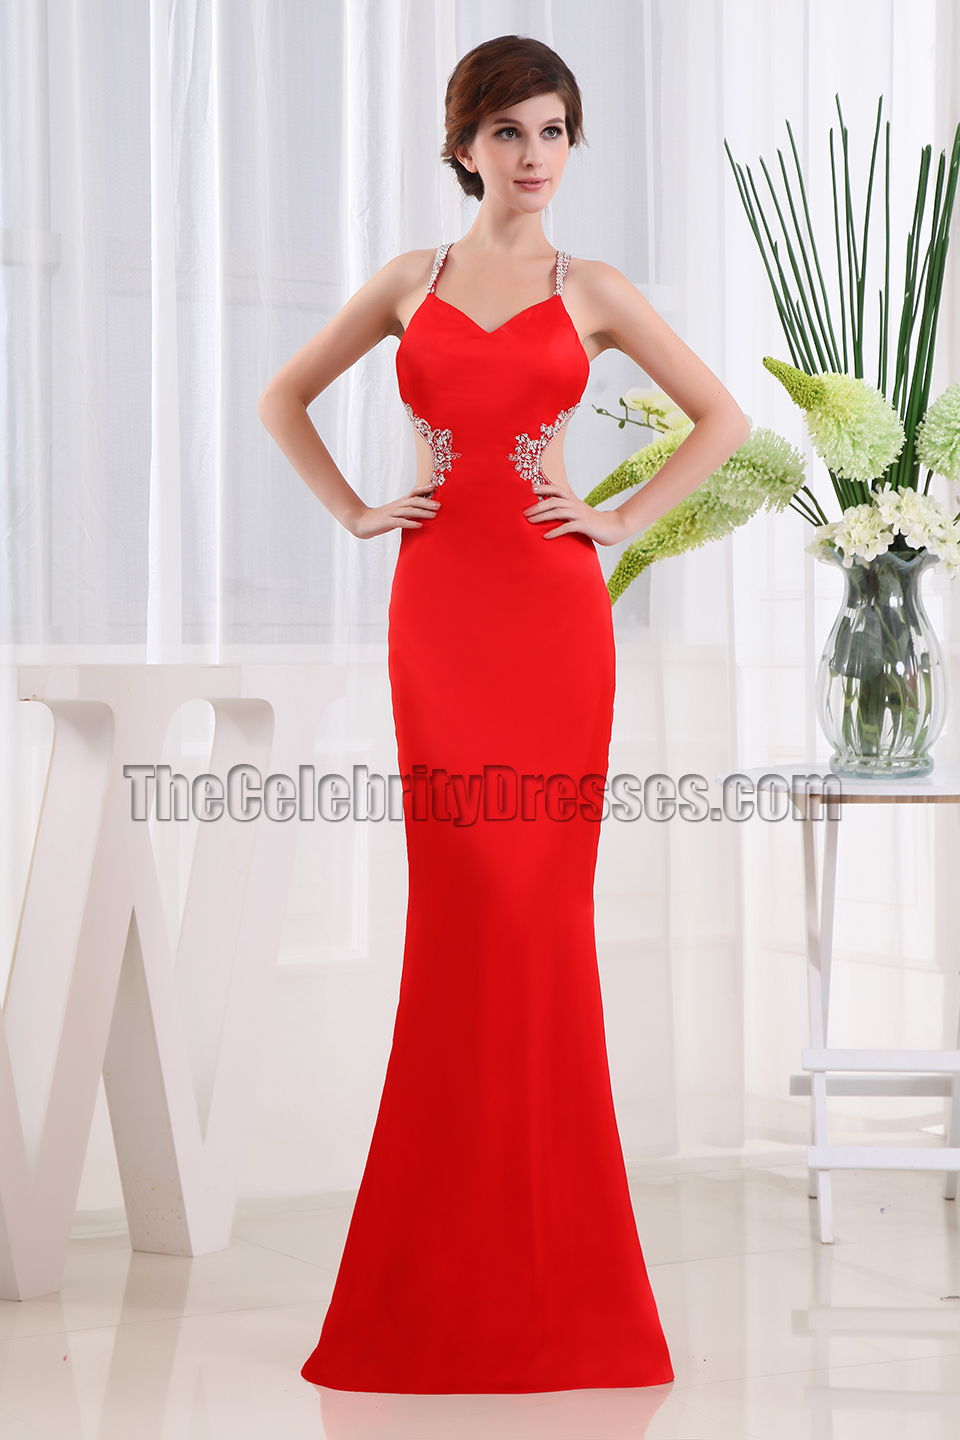 Sexy Red Long Backless Prom Dress Evening Gowns Thecelebritydresses